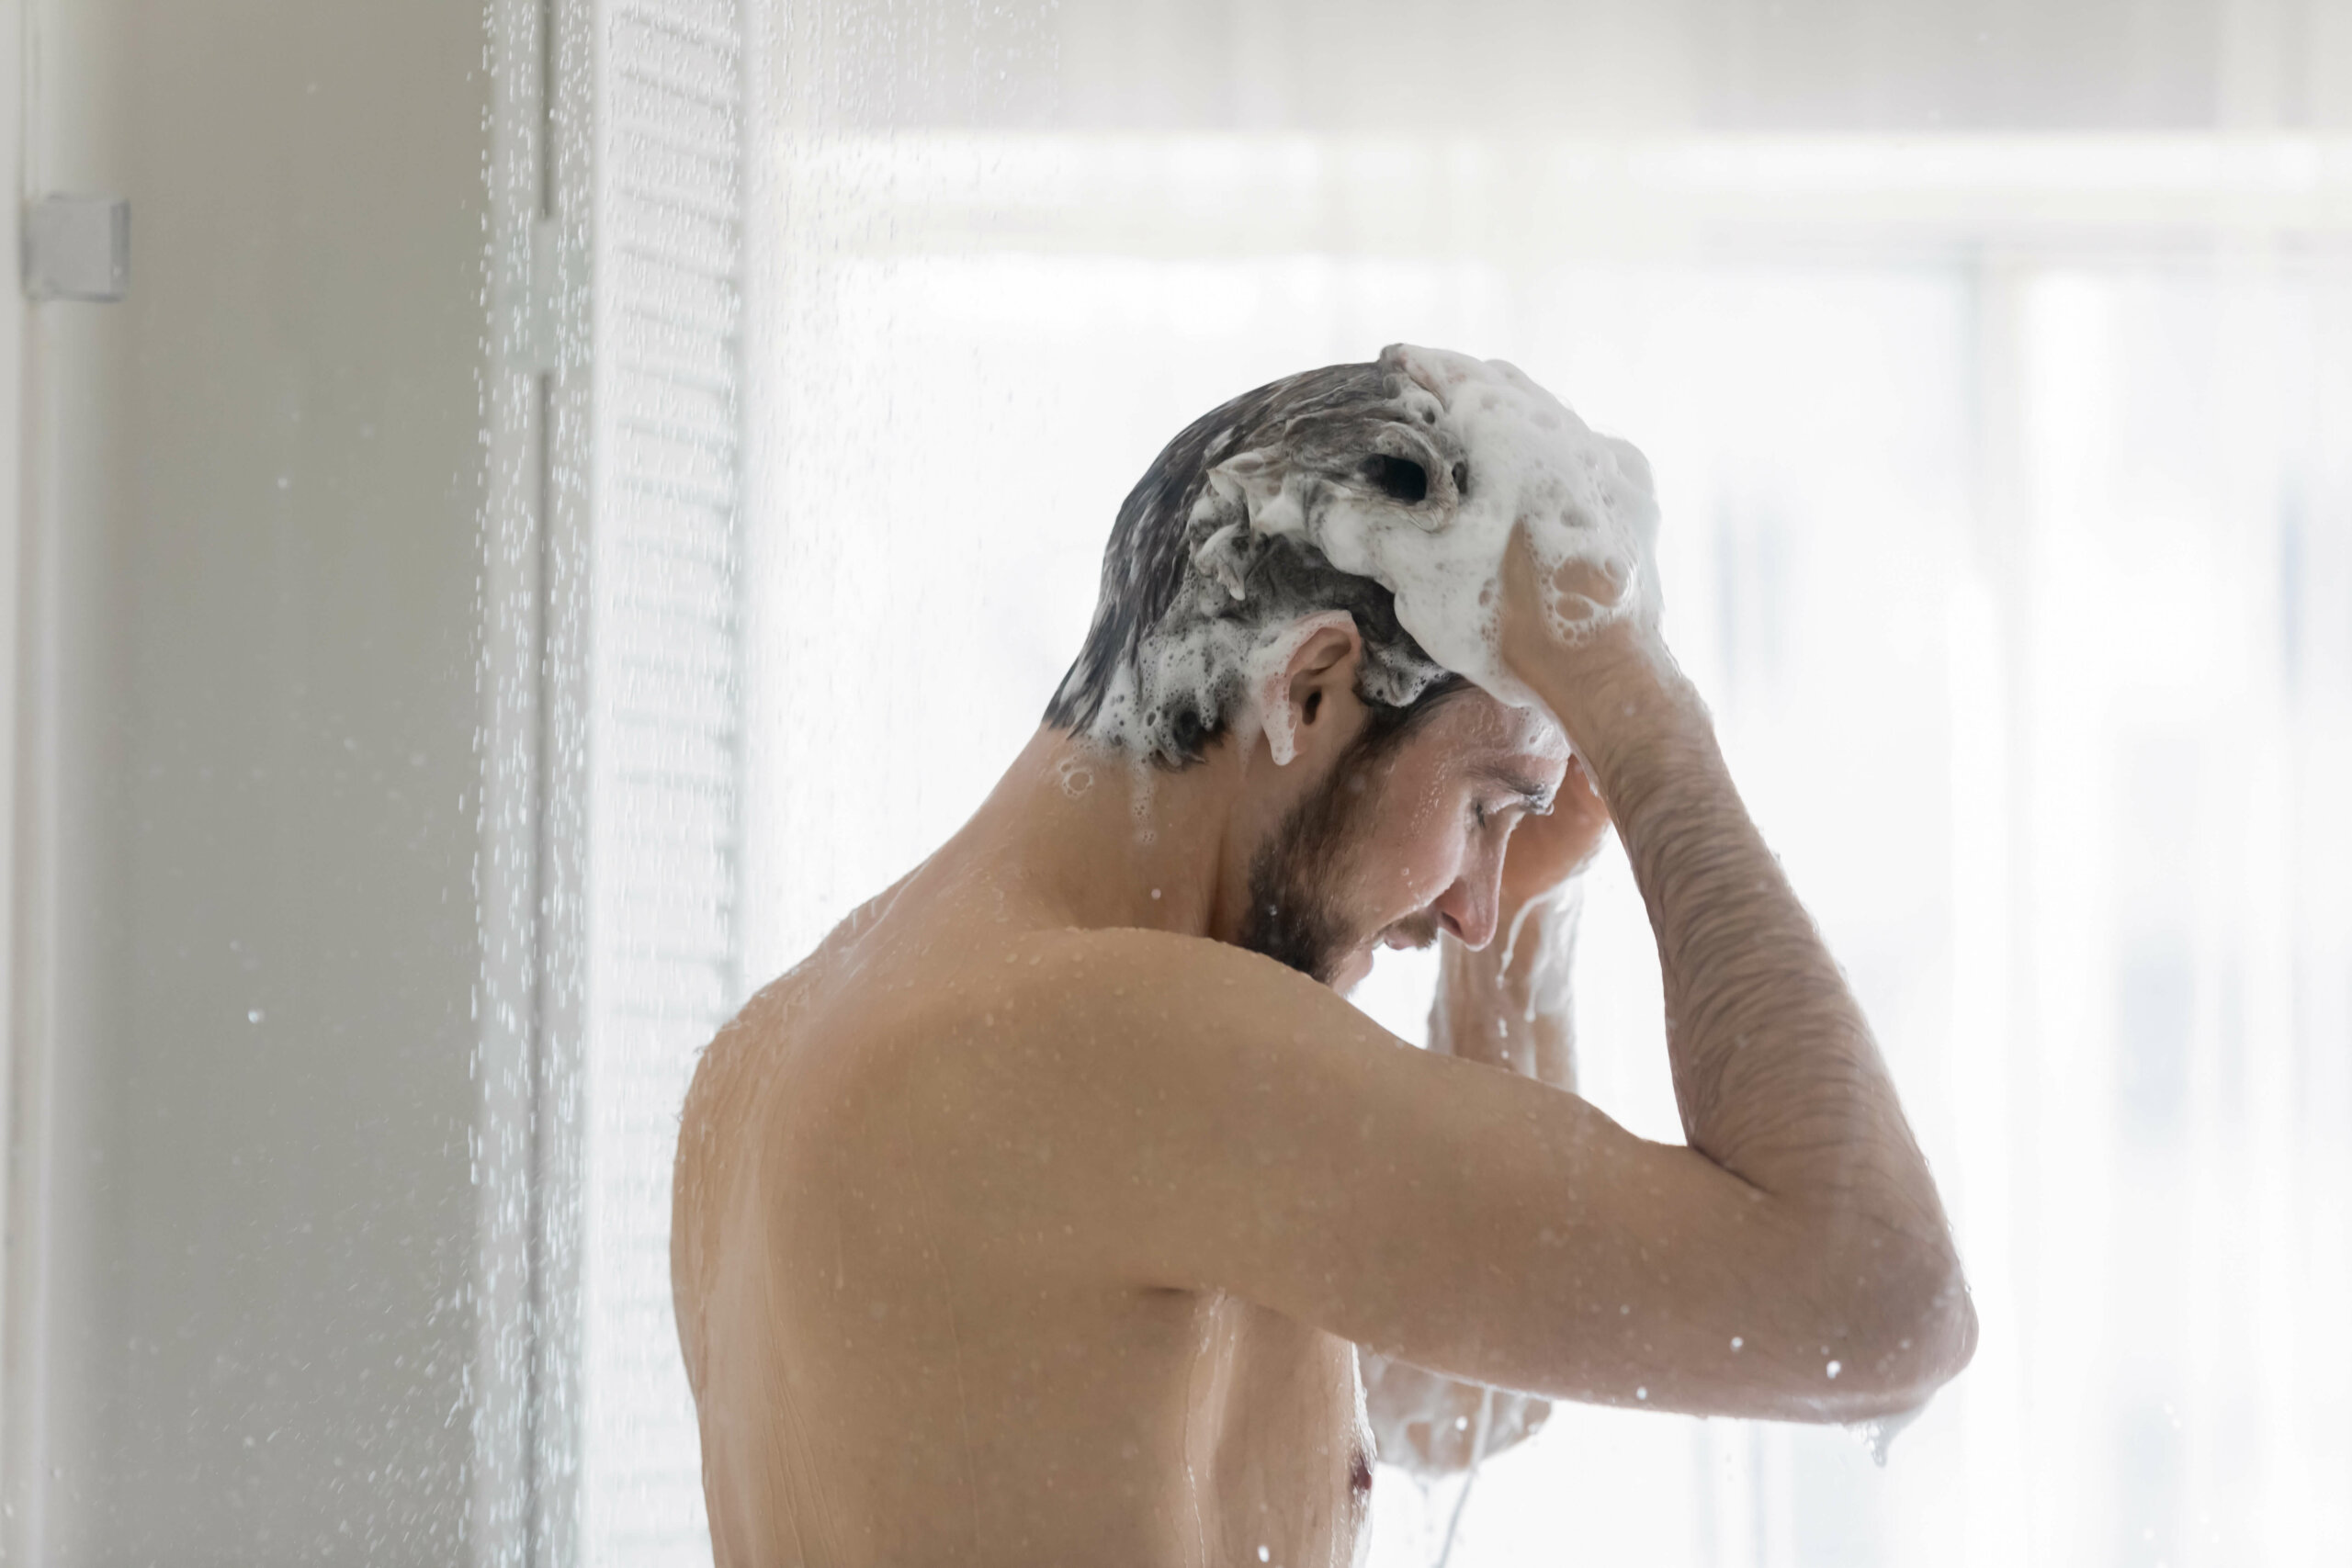 A man standing in the shower, washing his hair with minoxidil shampoo